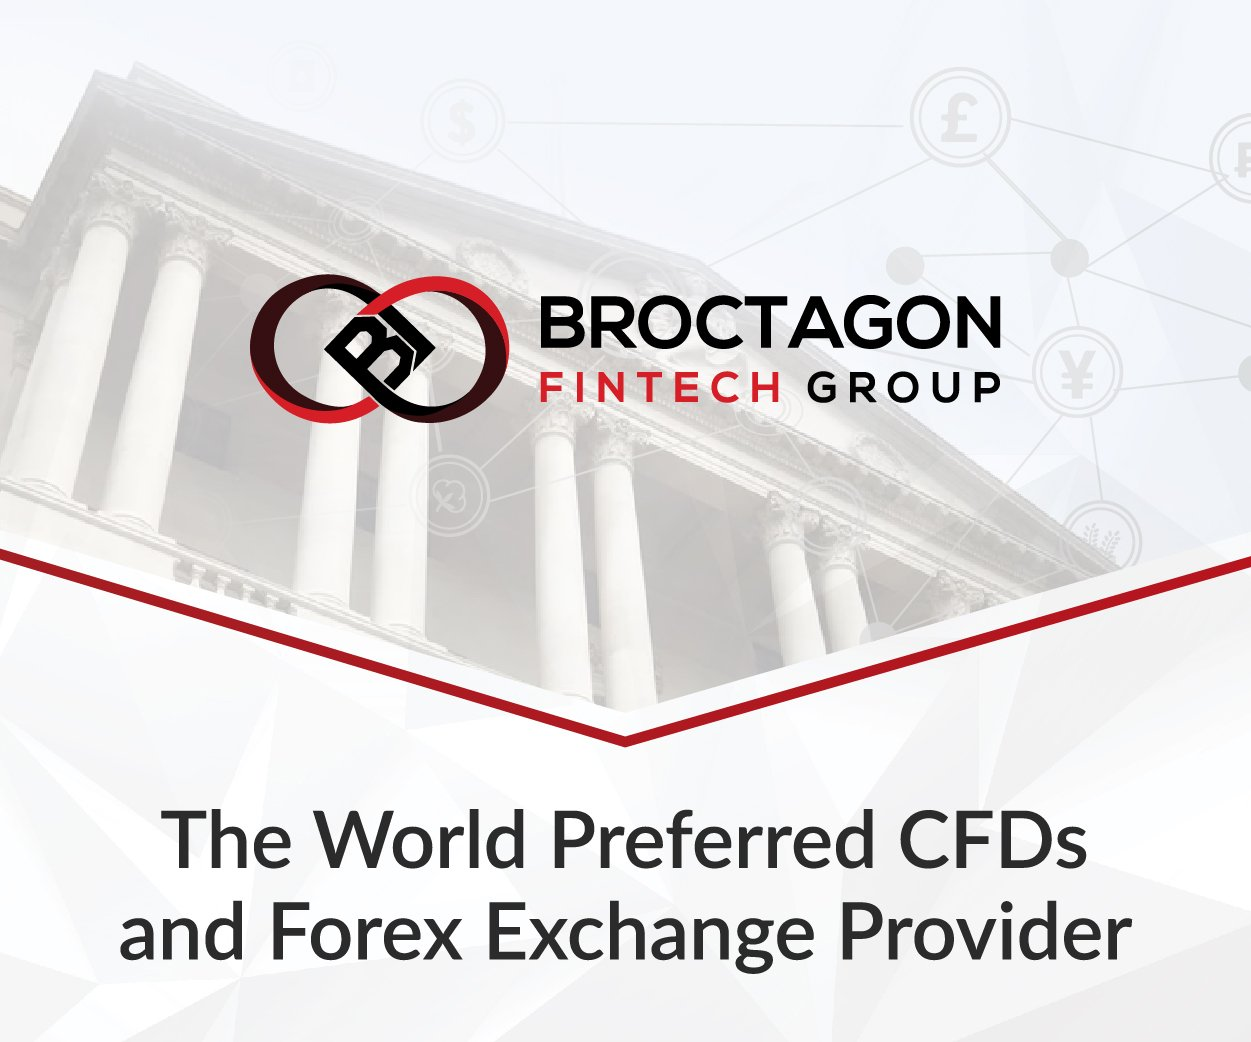 The World Preferred CFDs and Forex Exchange Provider